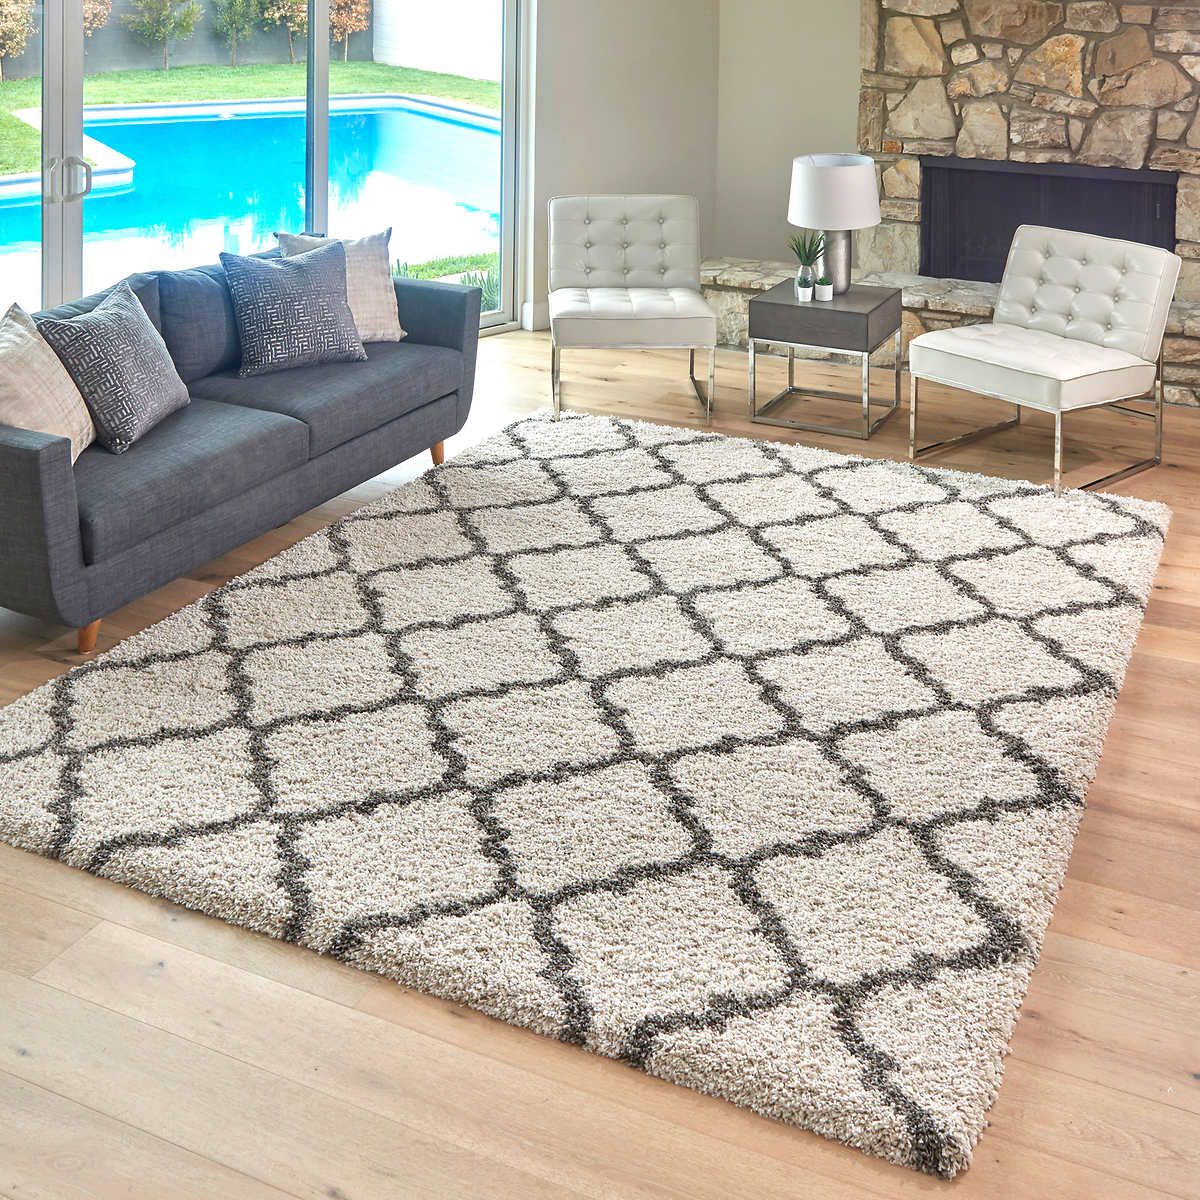 Rugs For The Living Room